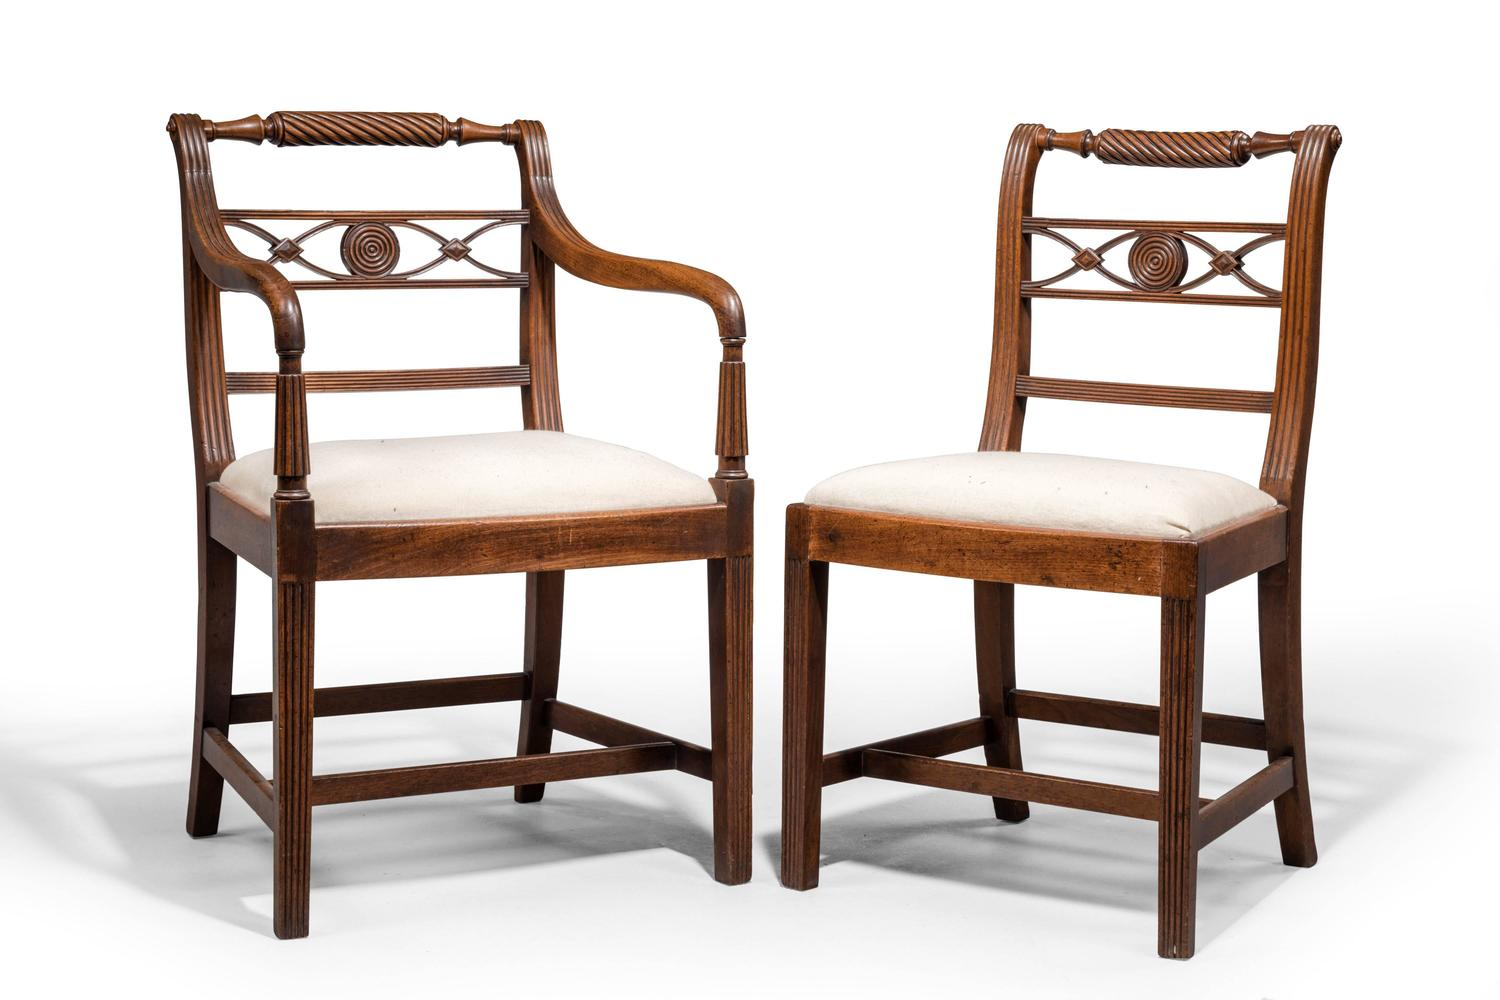 Set of Six Early 19th Century Mahogany Chairs For Sale at  : 734105z from www.1stdibs.com size 1500 x 1000 jpeg 104kB